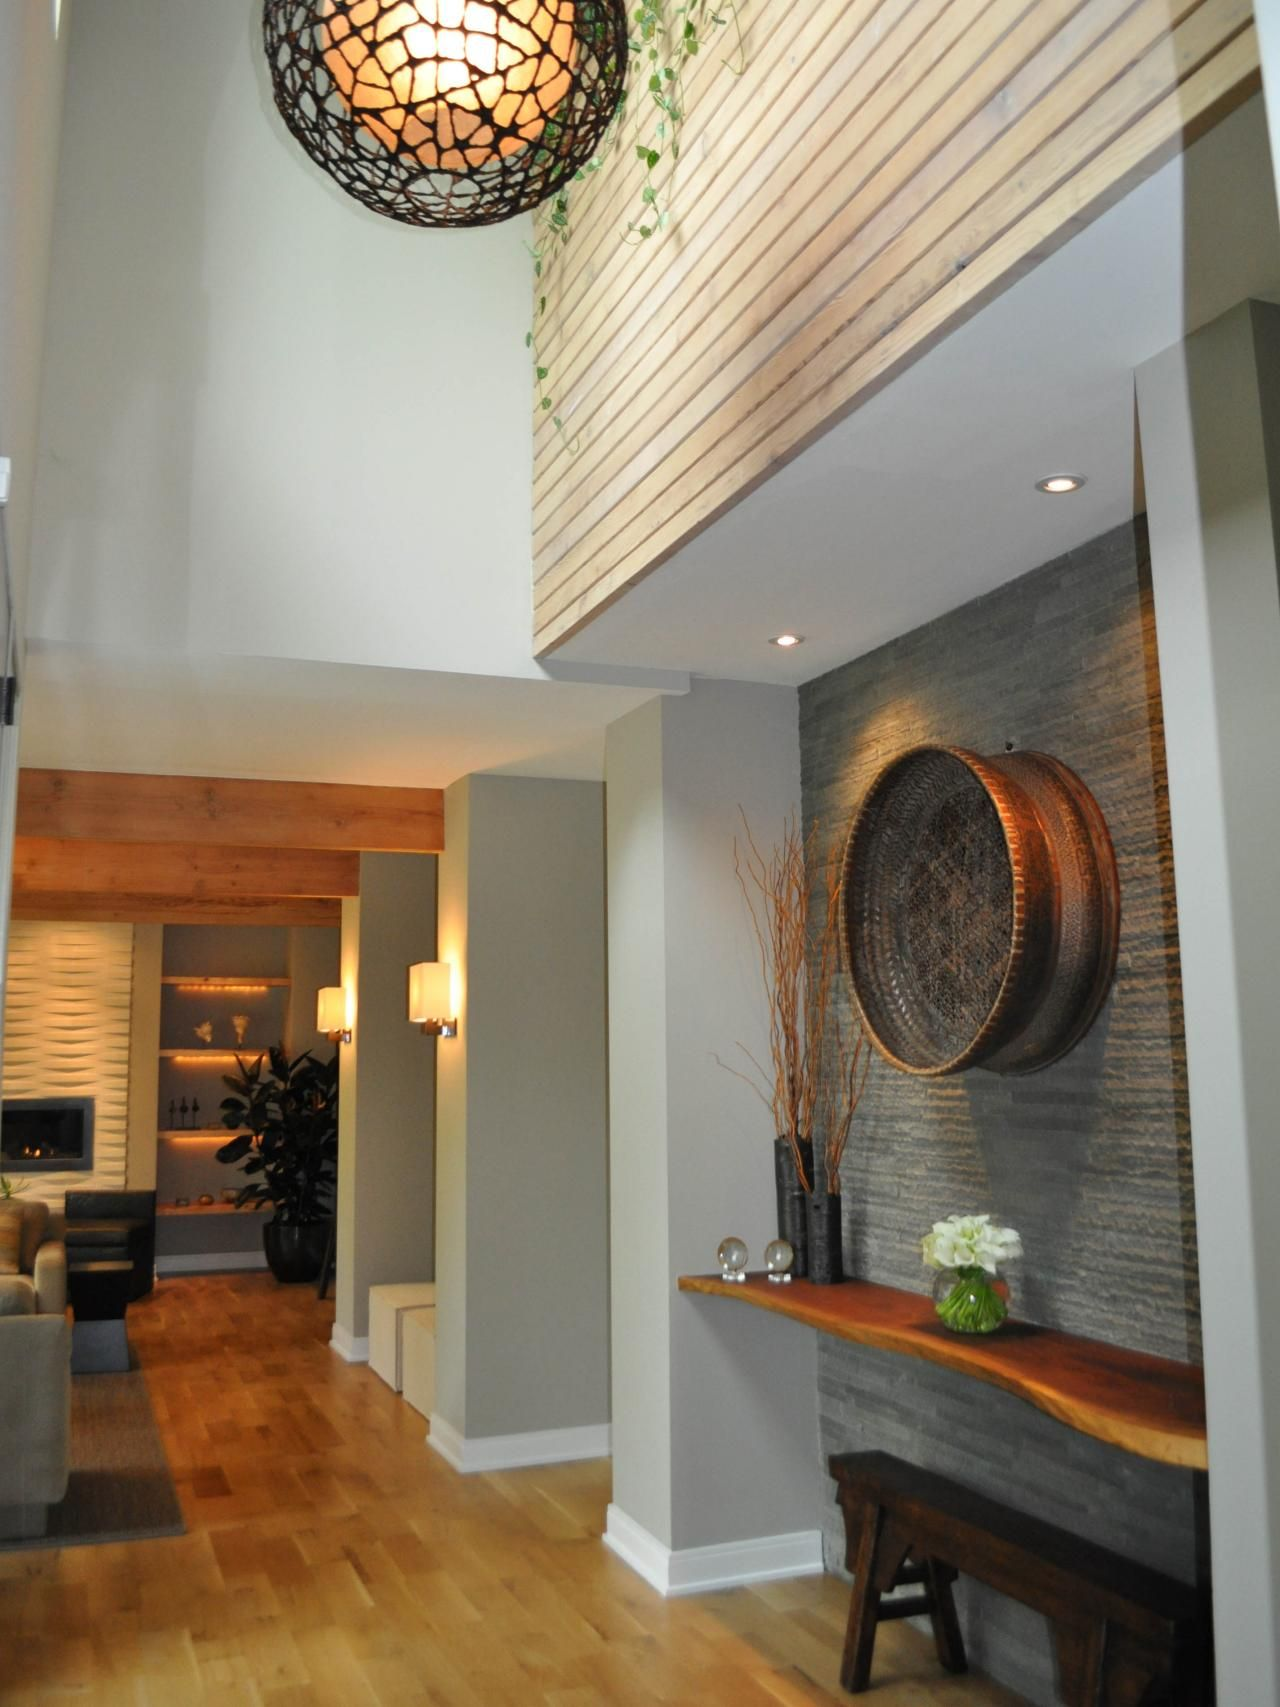 This Contemporary Foyer Lends Itself To Natural Finishes